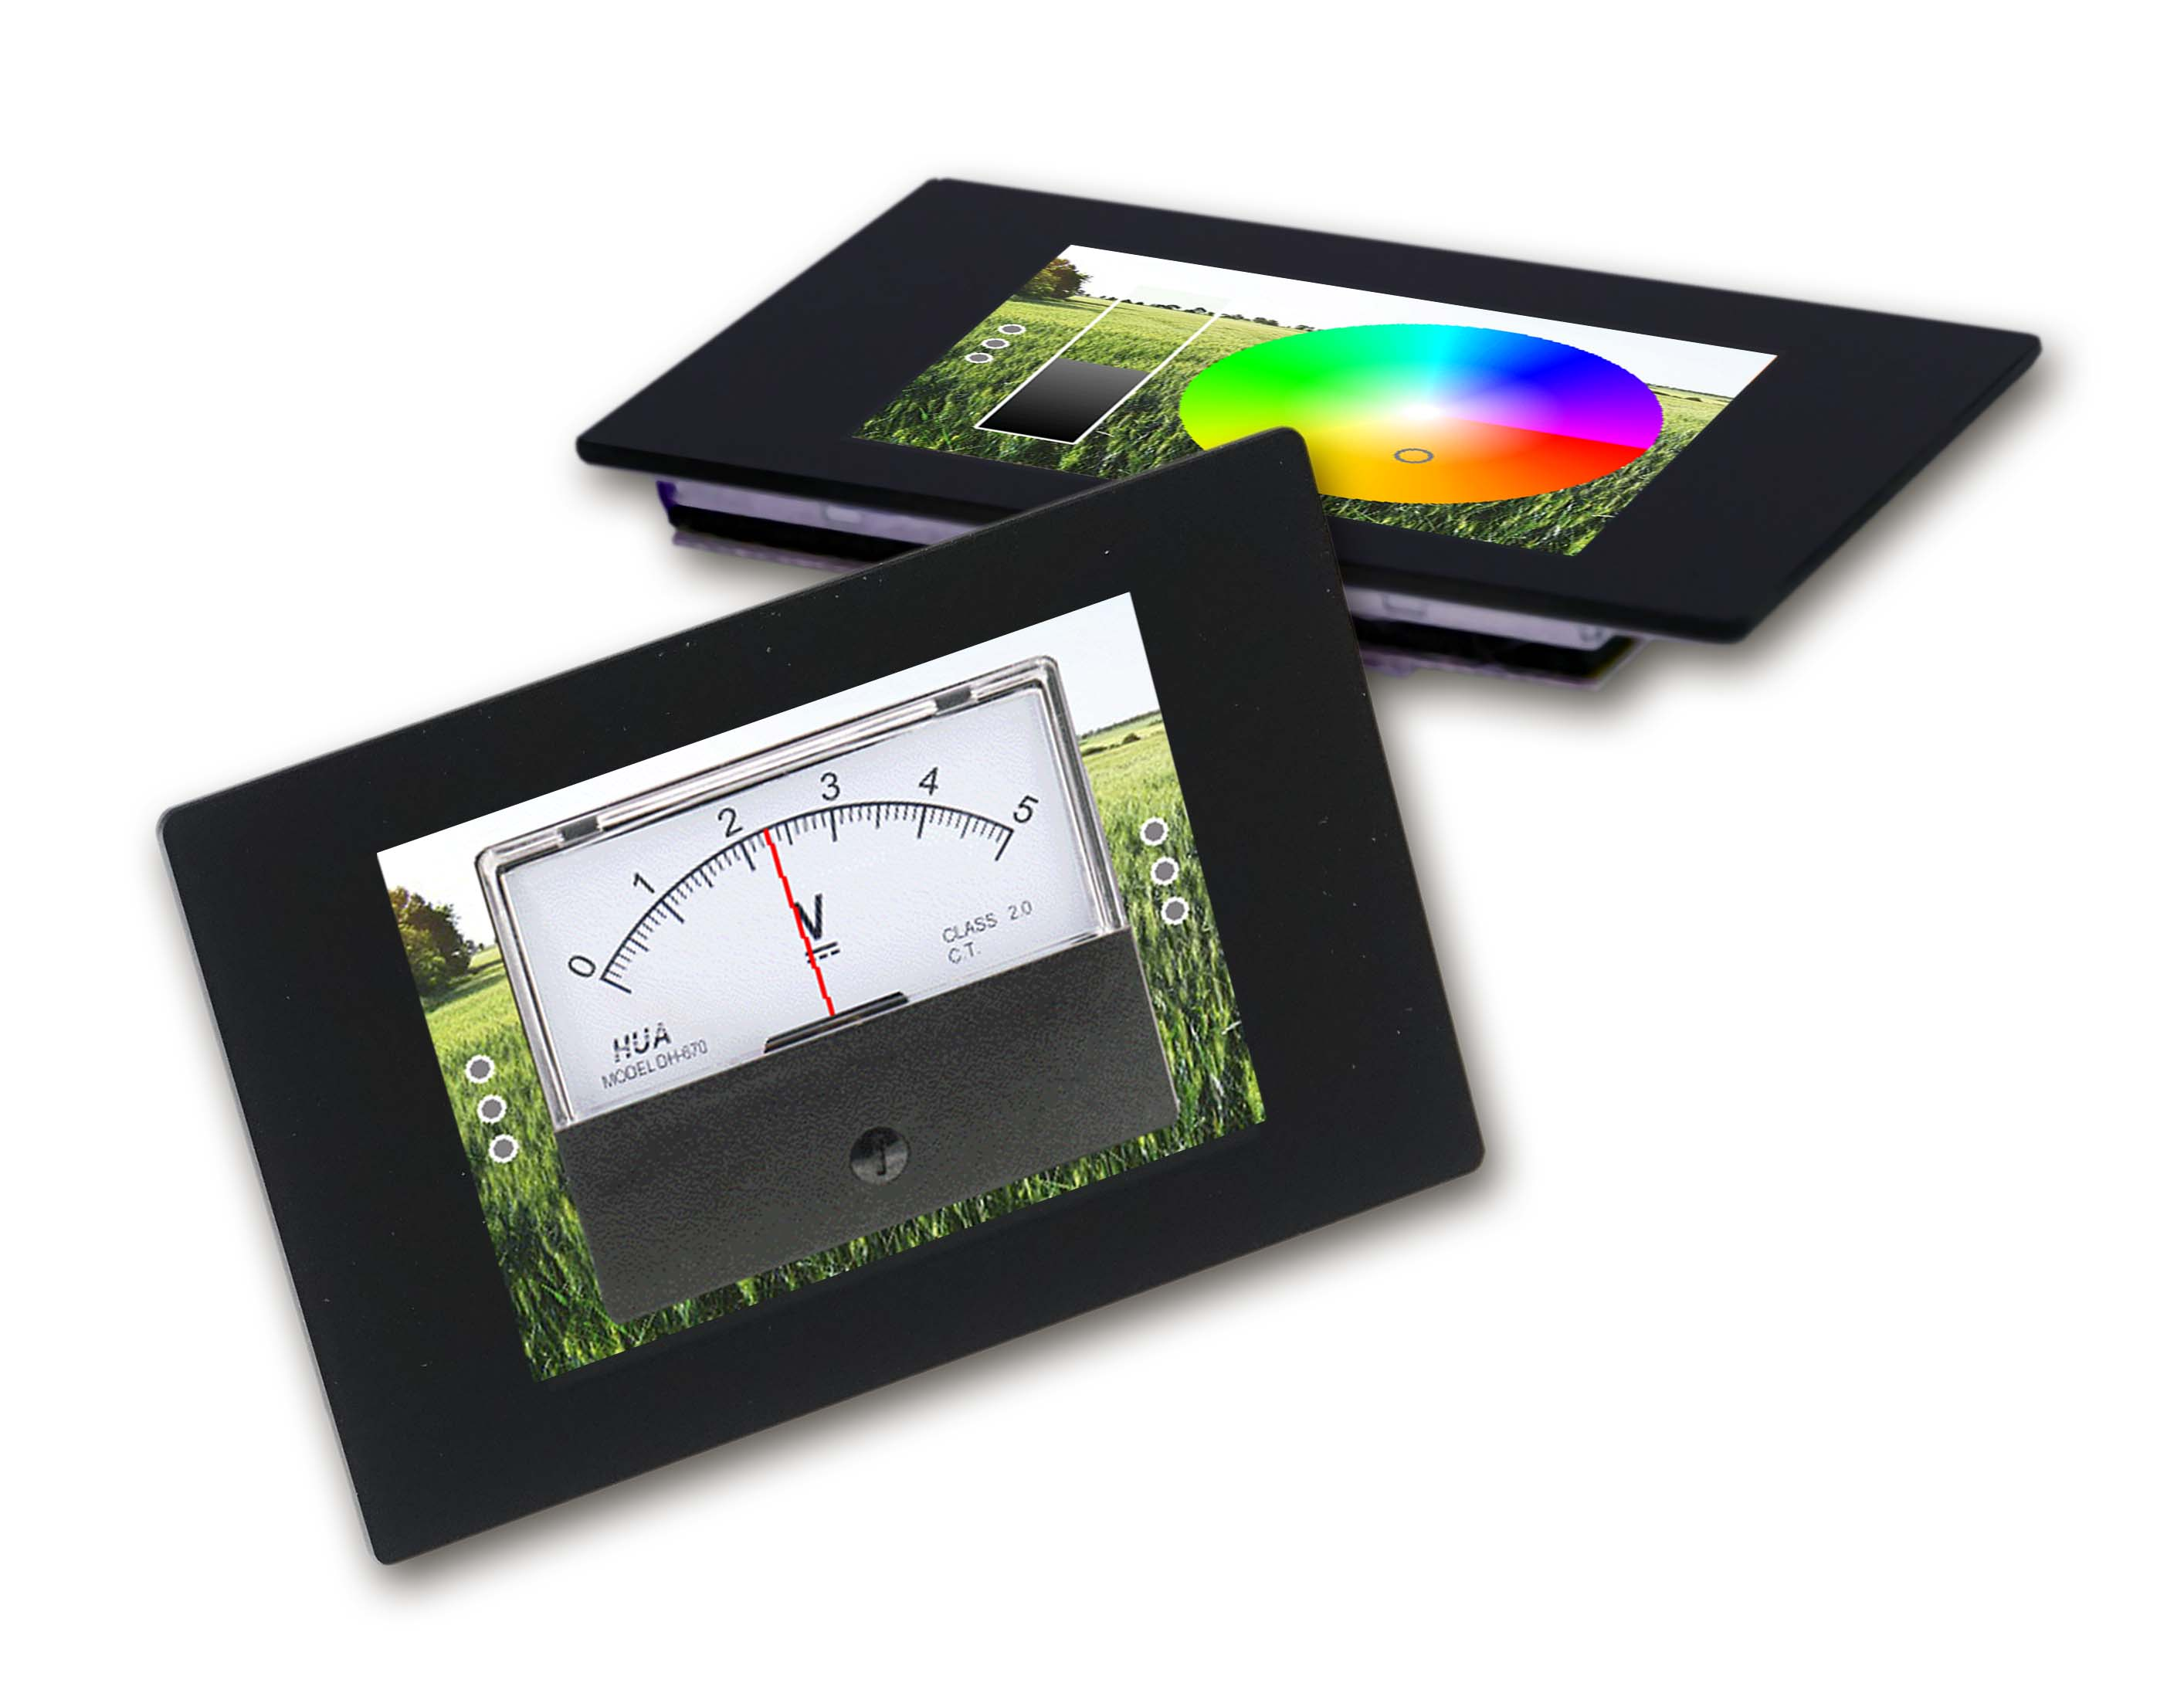 Intelligent displays for home automation for display, control and regulation